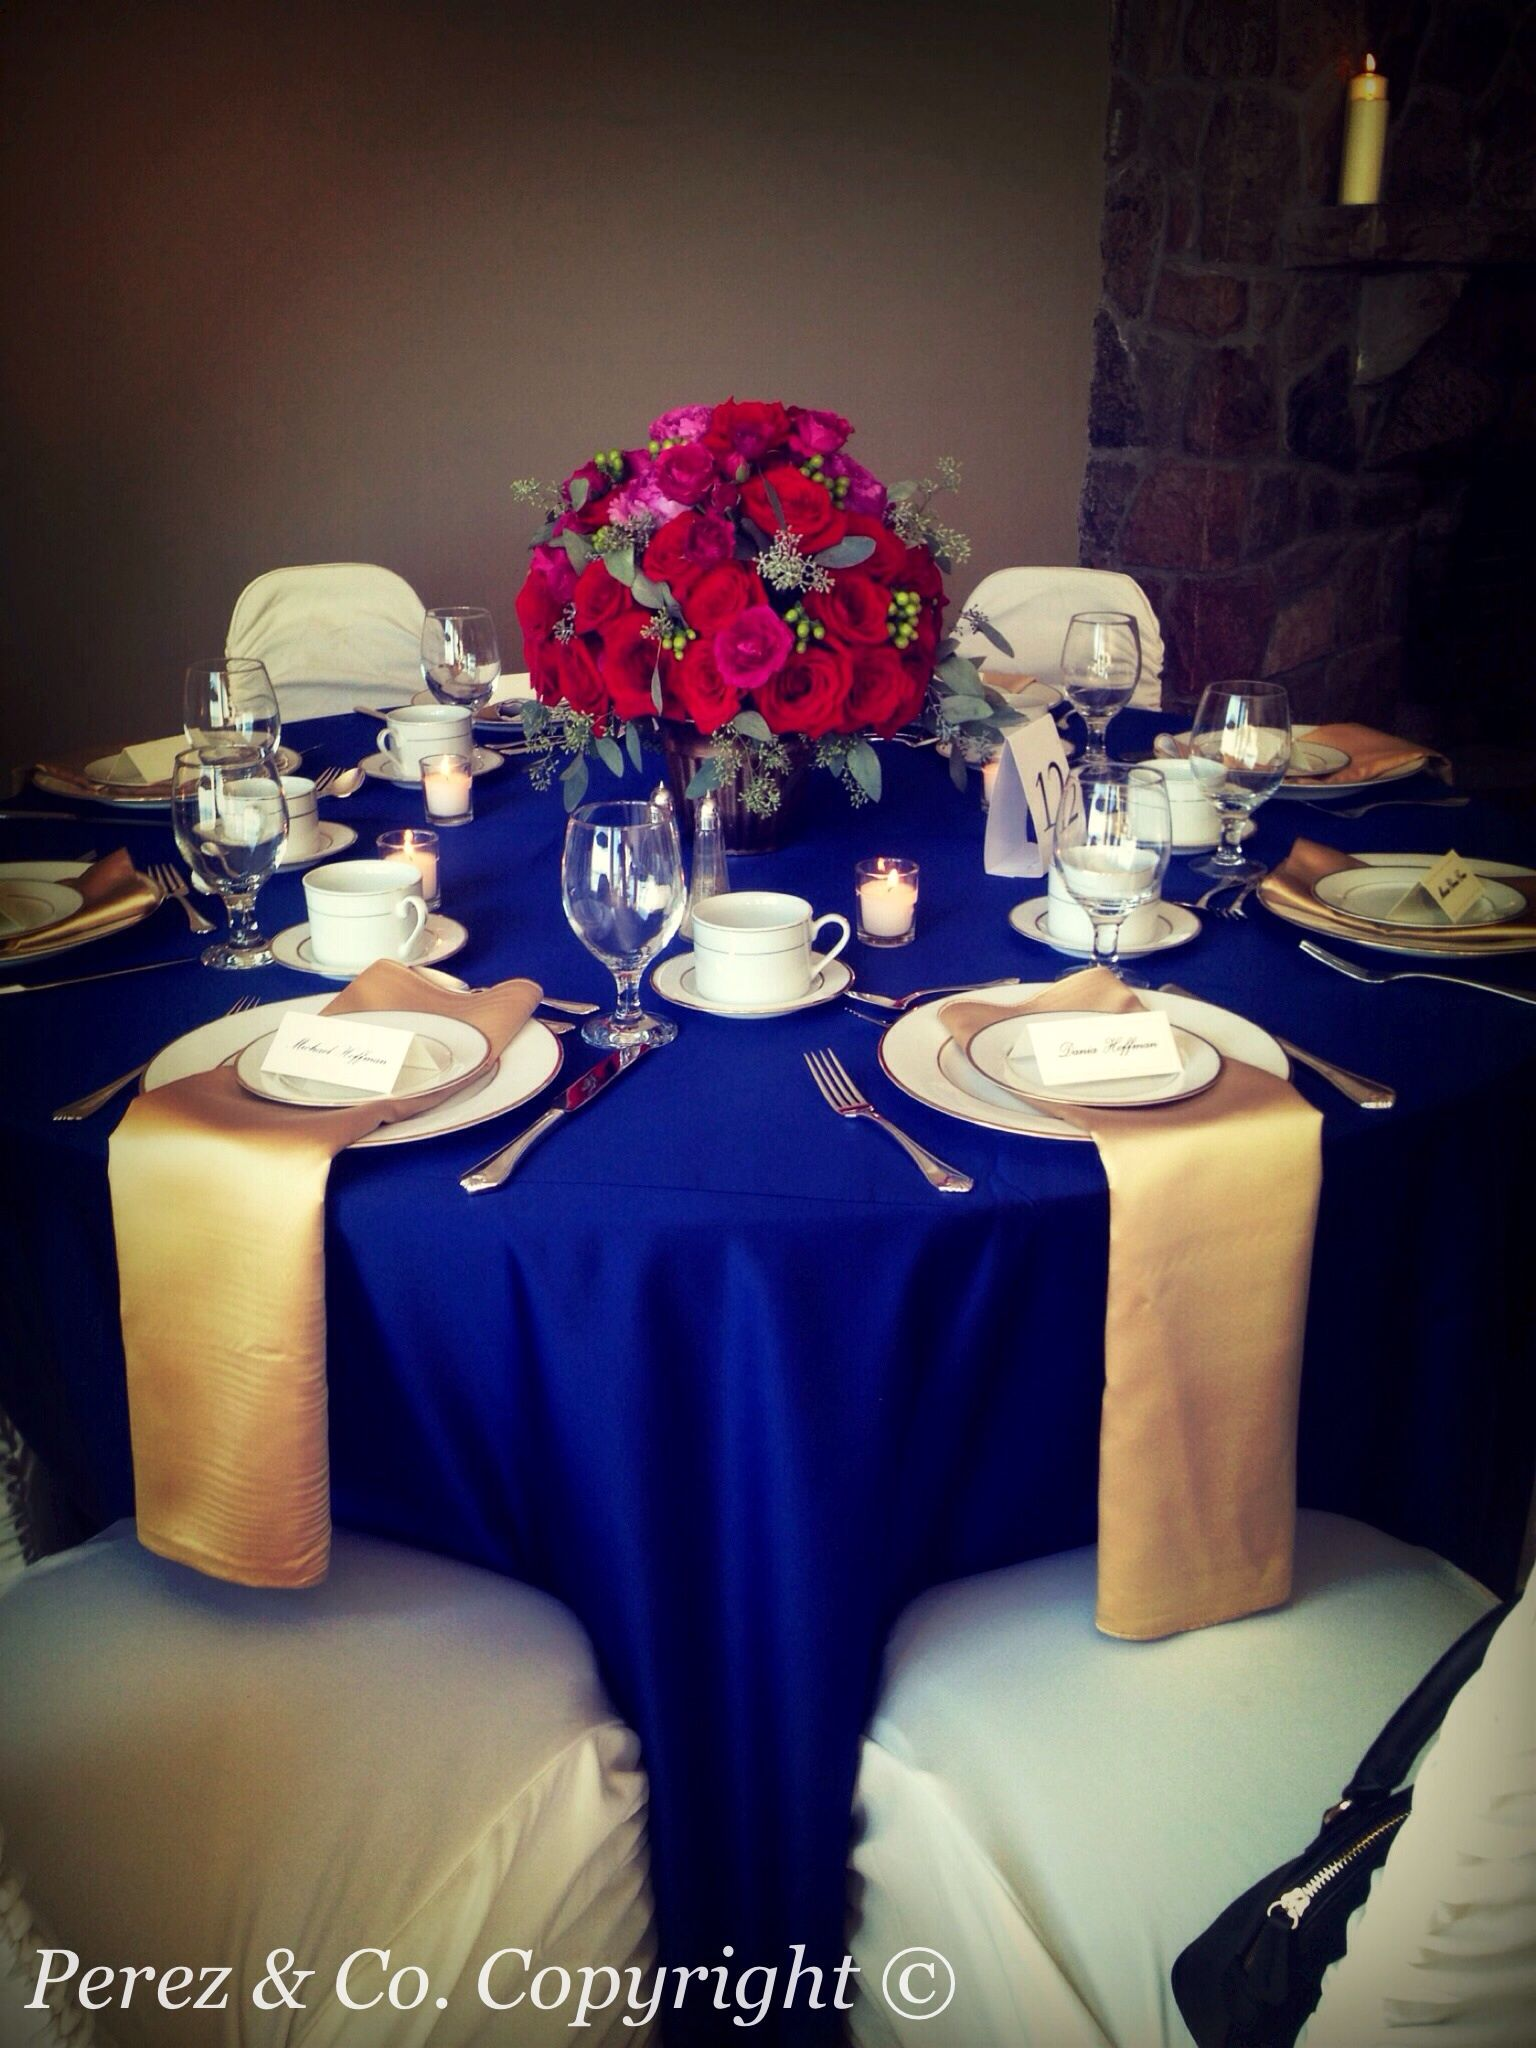 Red Rose And Pink Garden Rose Centrepieces On Navy Blue Silk Table Cloth  And Gold Napkins